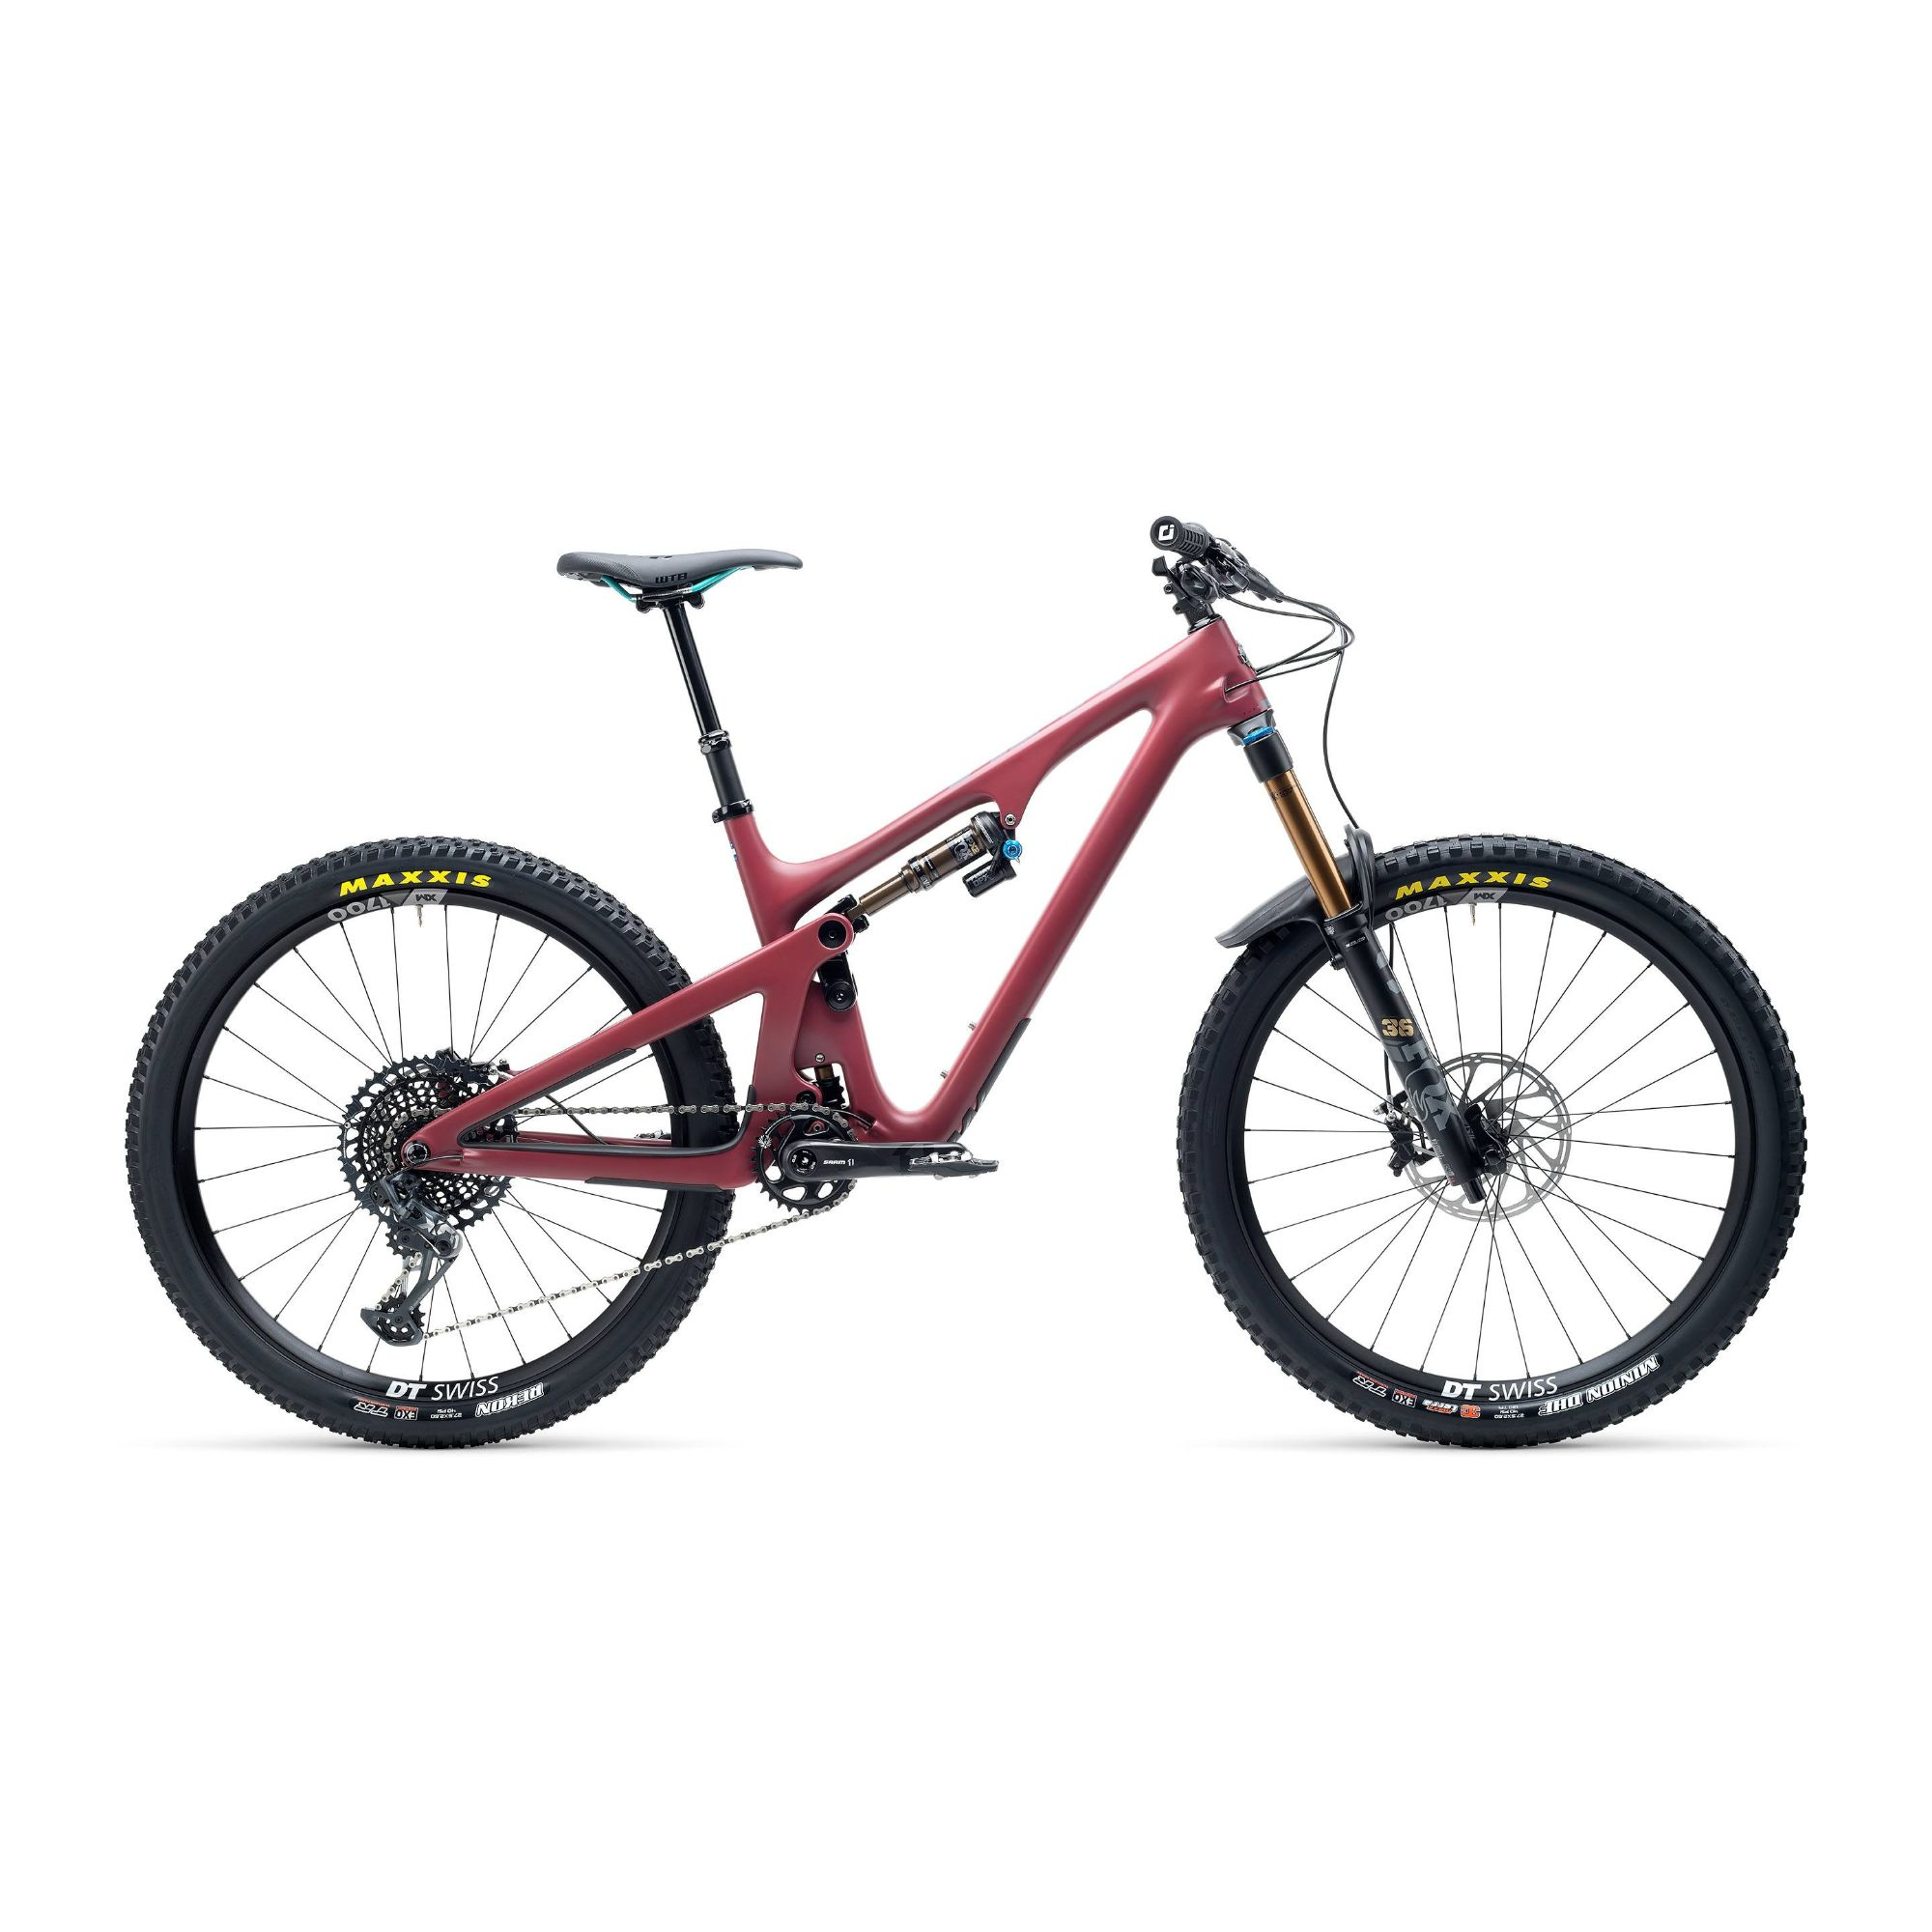 Yeti SB140 T Series T2 27.5 GX Eagle Carbon Mountain Bike 2021 RON